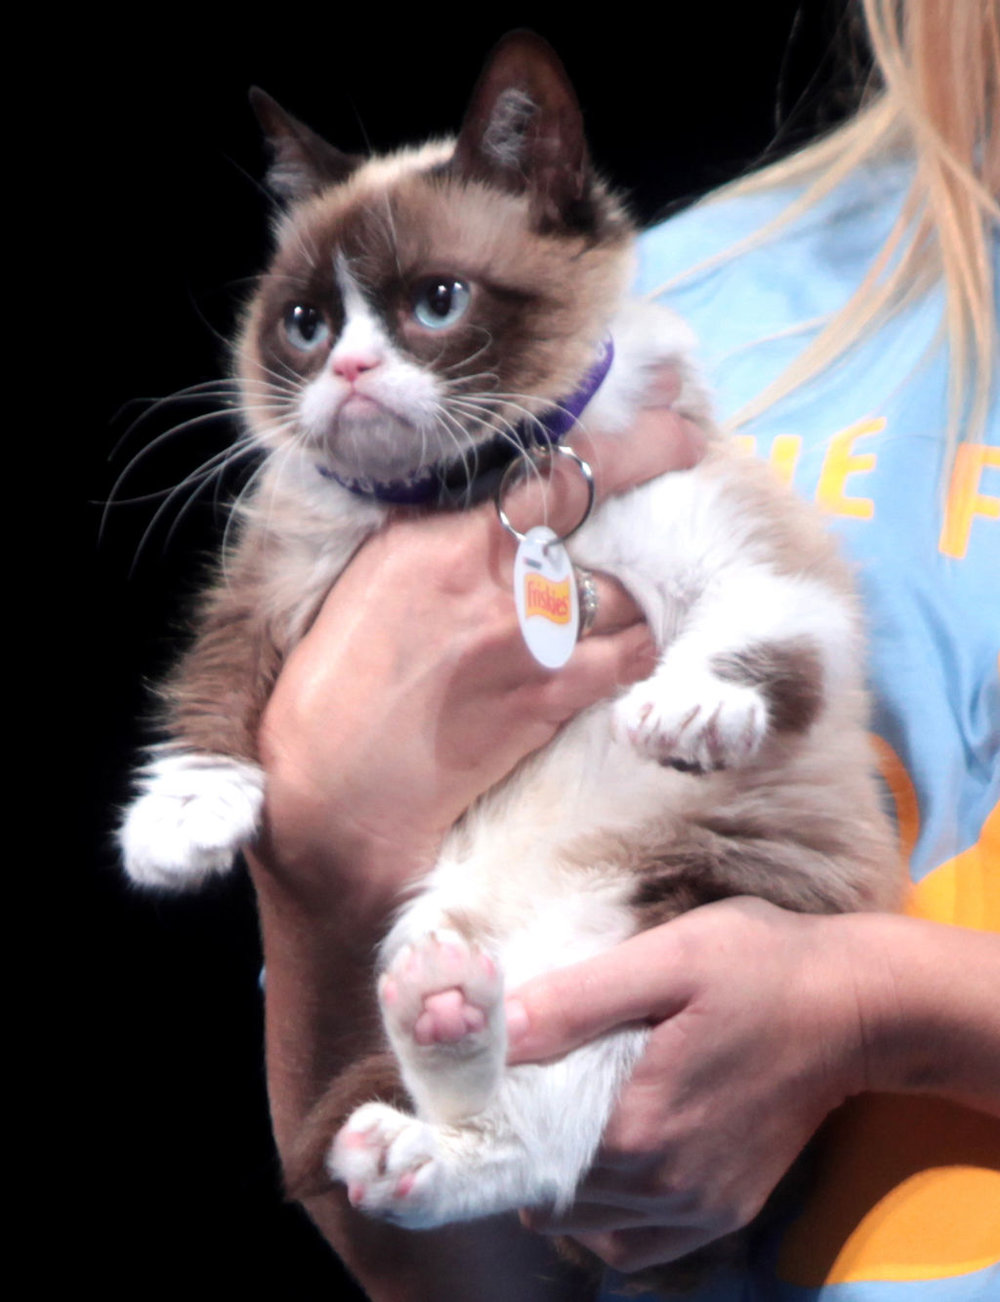 Grumpy_Cat_by_Gage_Skidmore.jpg